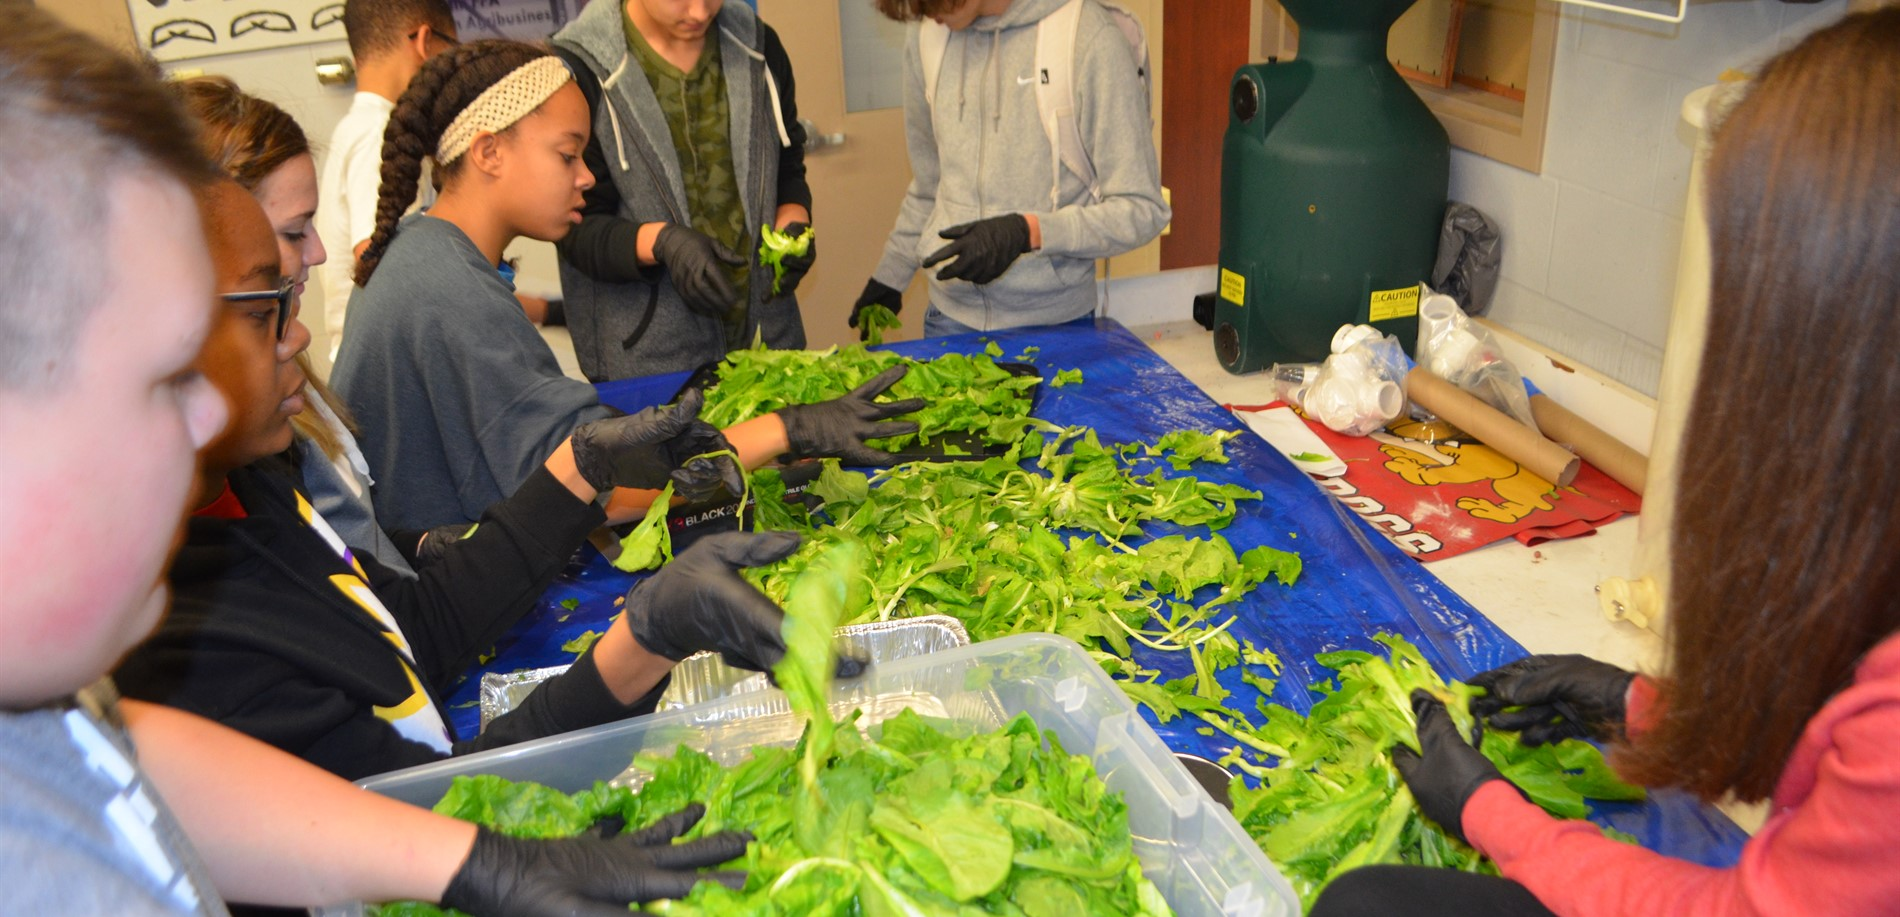 John Hardin Agriculture students are raising bibb lettuce for the school cafeteria and to help relieve community hunger.